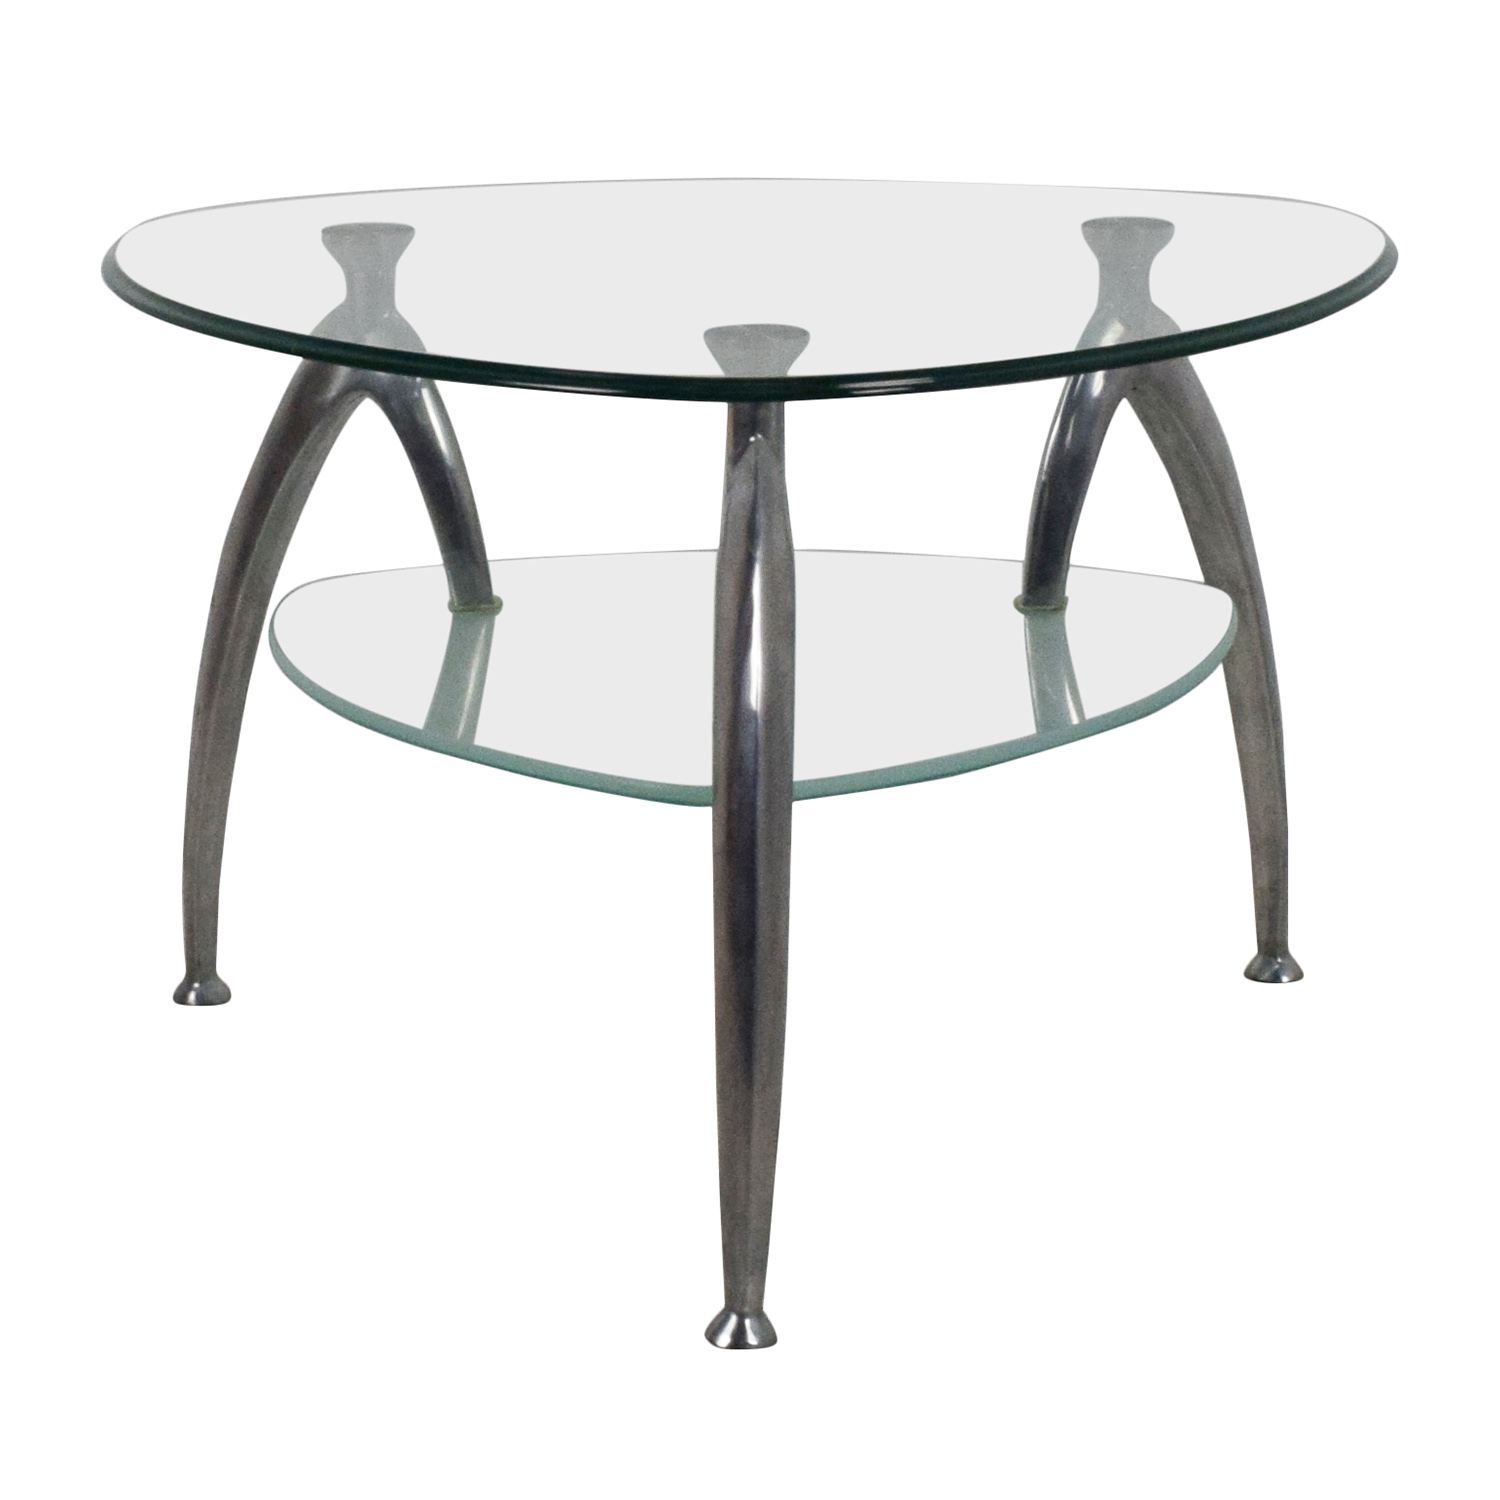 64 Off Geometric Glass Top Coffee Table Tables